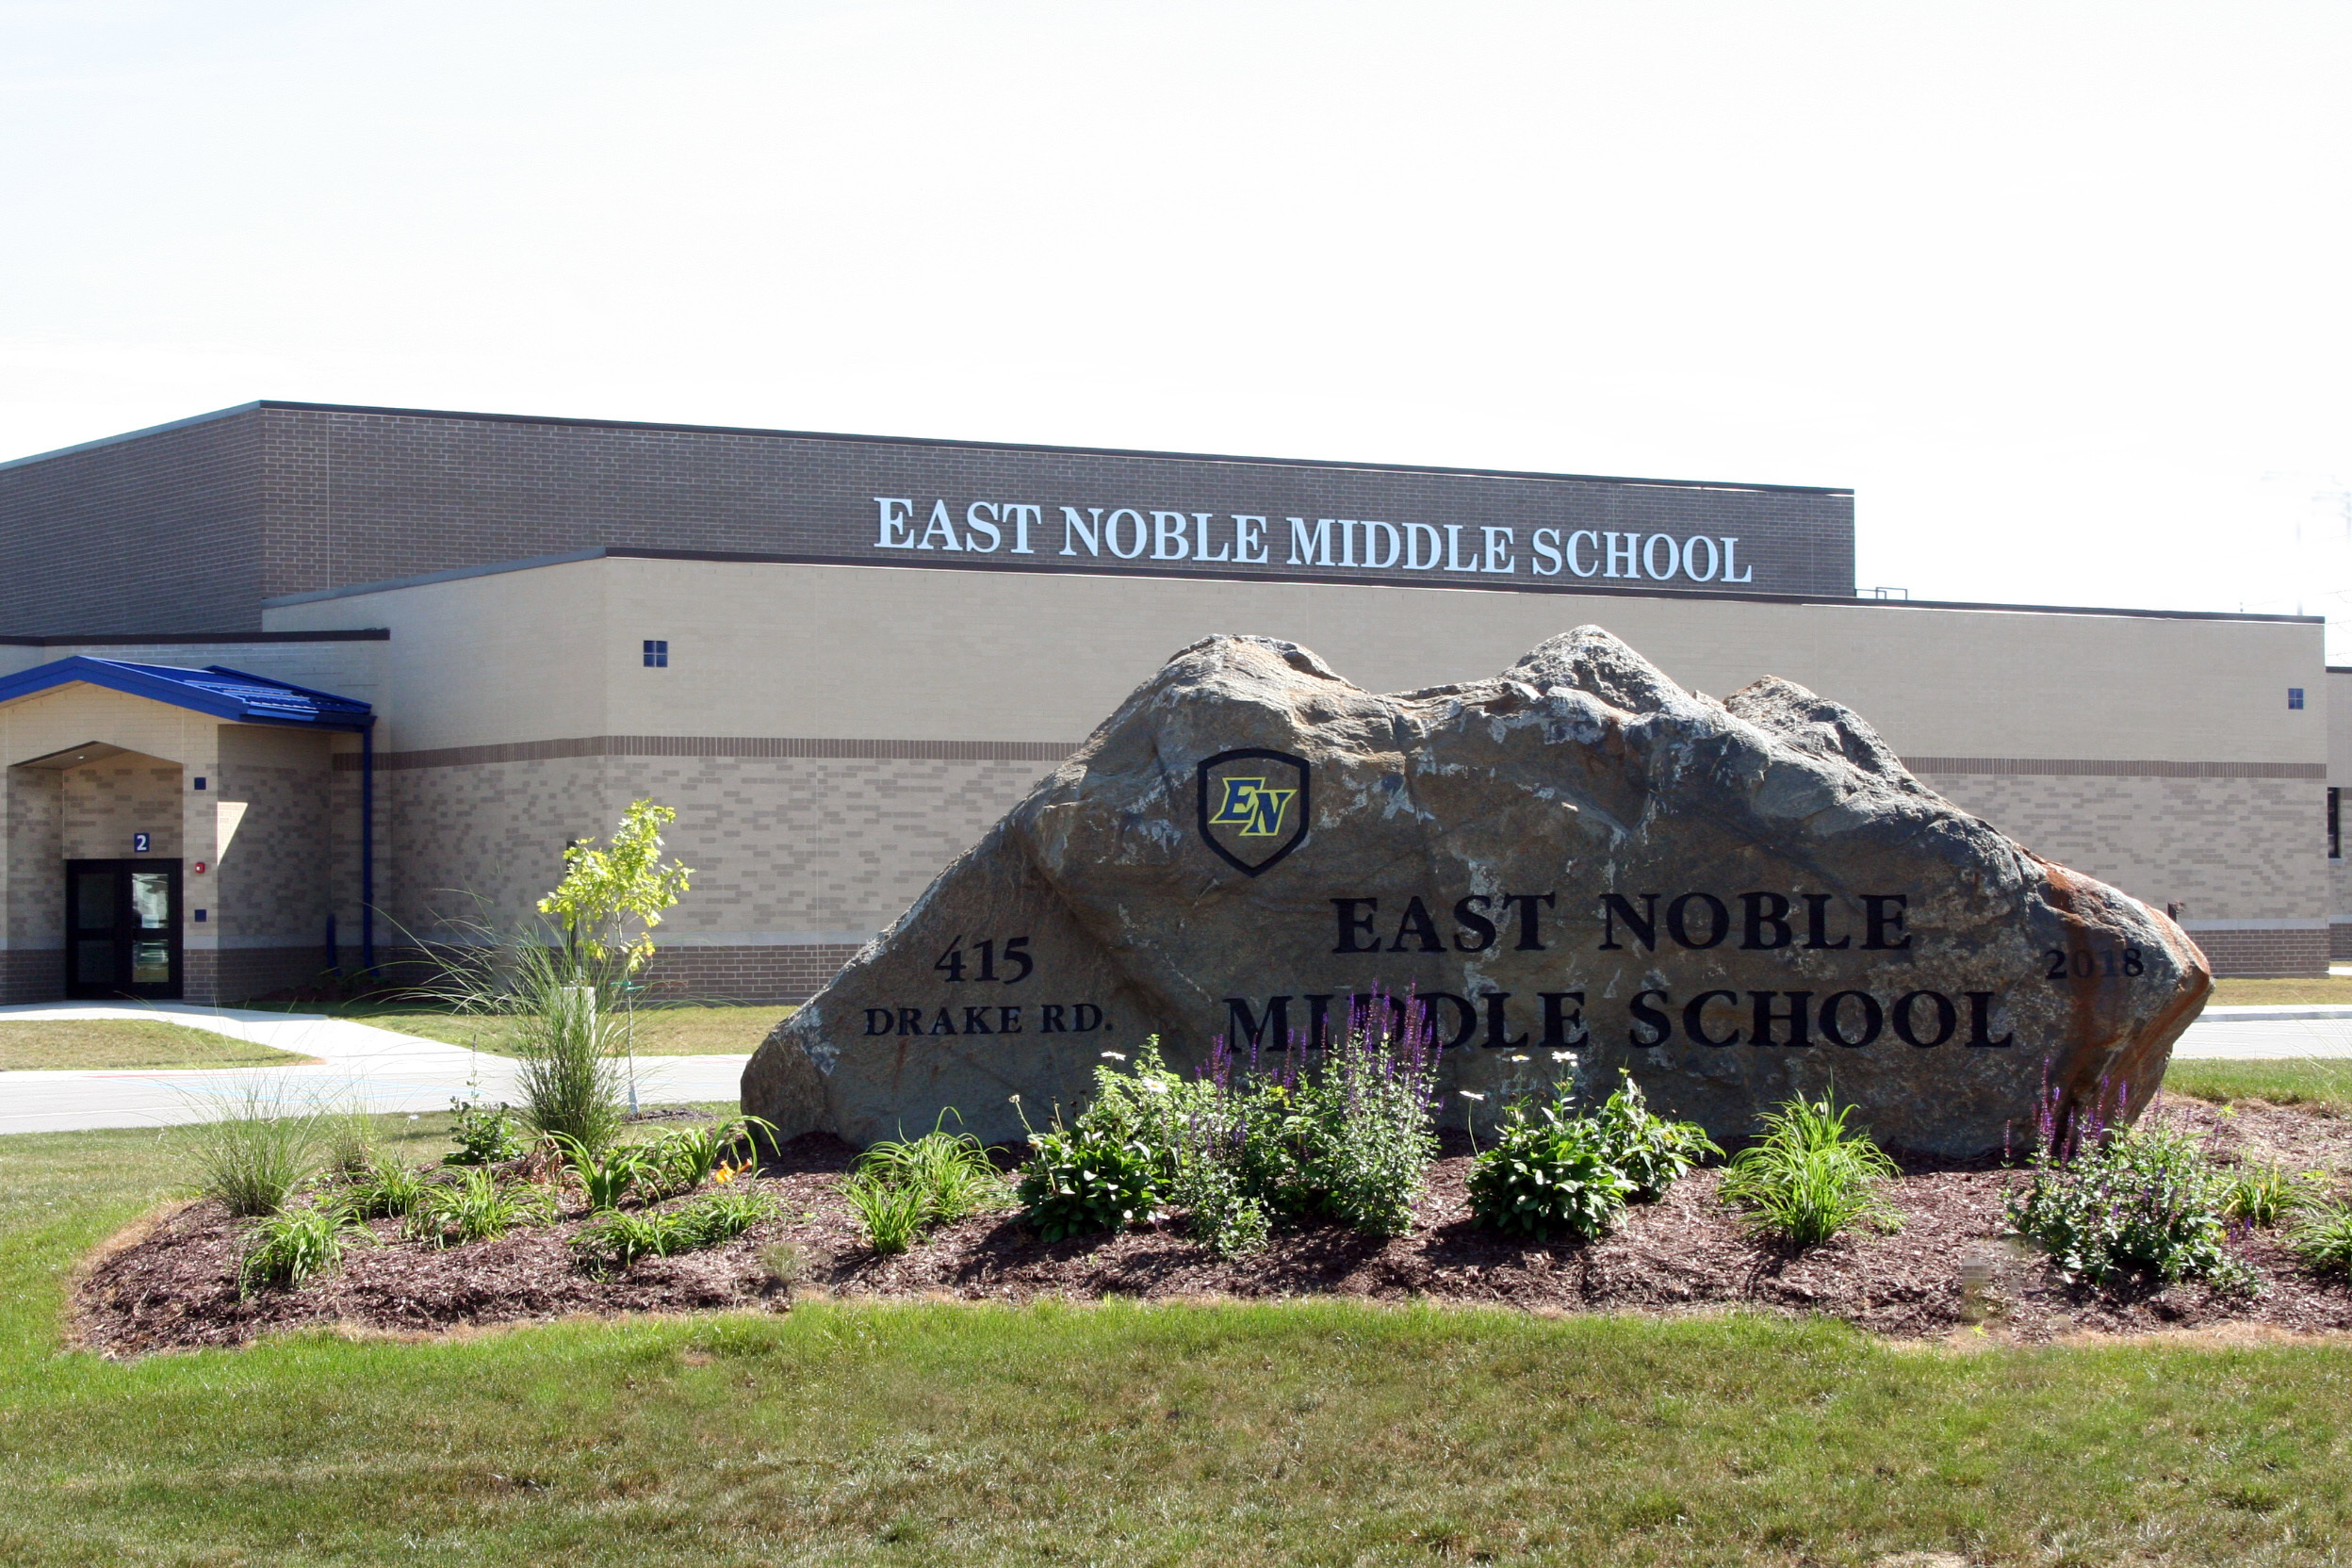 Engraved rock at East Noble Middle School